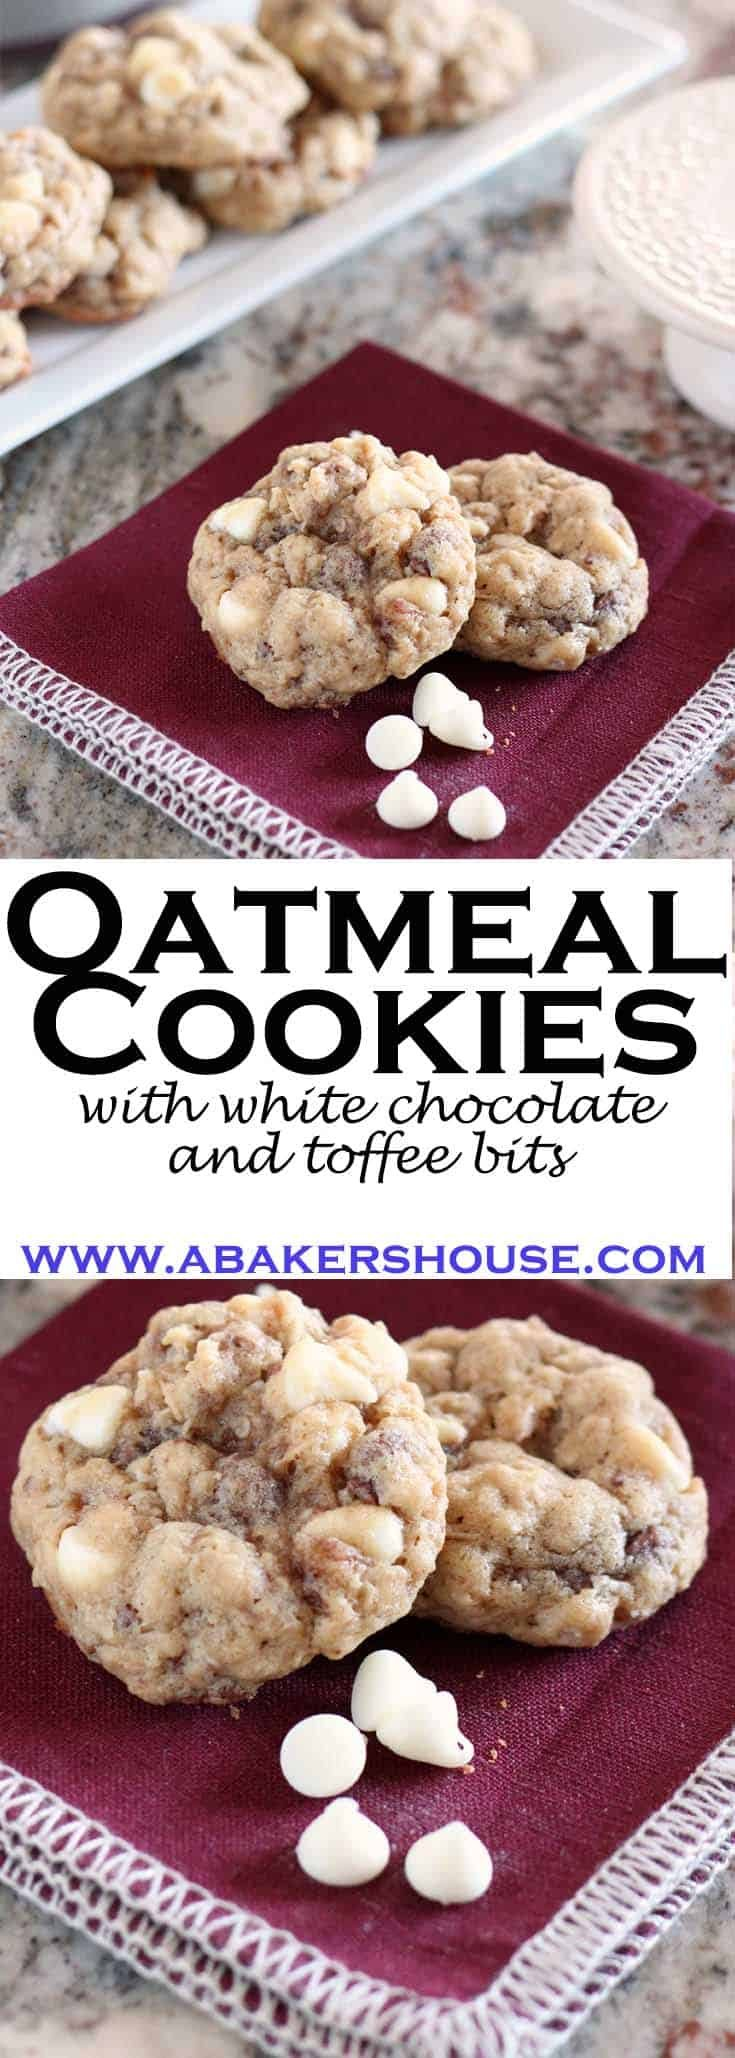 Here are Oatmeal Cookies with White Chocolate Chips and Toffee Bits. I like the sweetness that the white chocolate adds to the oatmeal cookies and the toffee, well...you can't go wrong with toffee bits! Dried cherries or cranberries would have been a nice alternative too. #oatmealcookies #whitechocolate #toffee #abakershouse